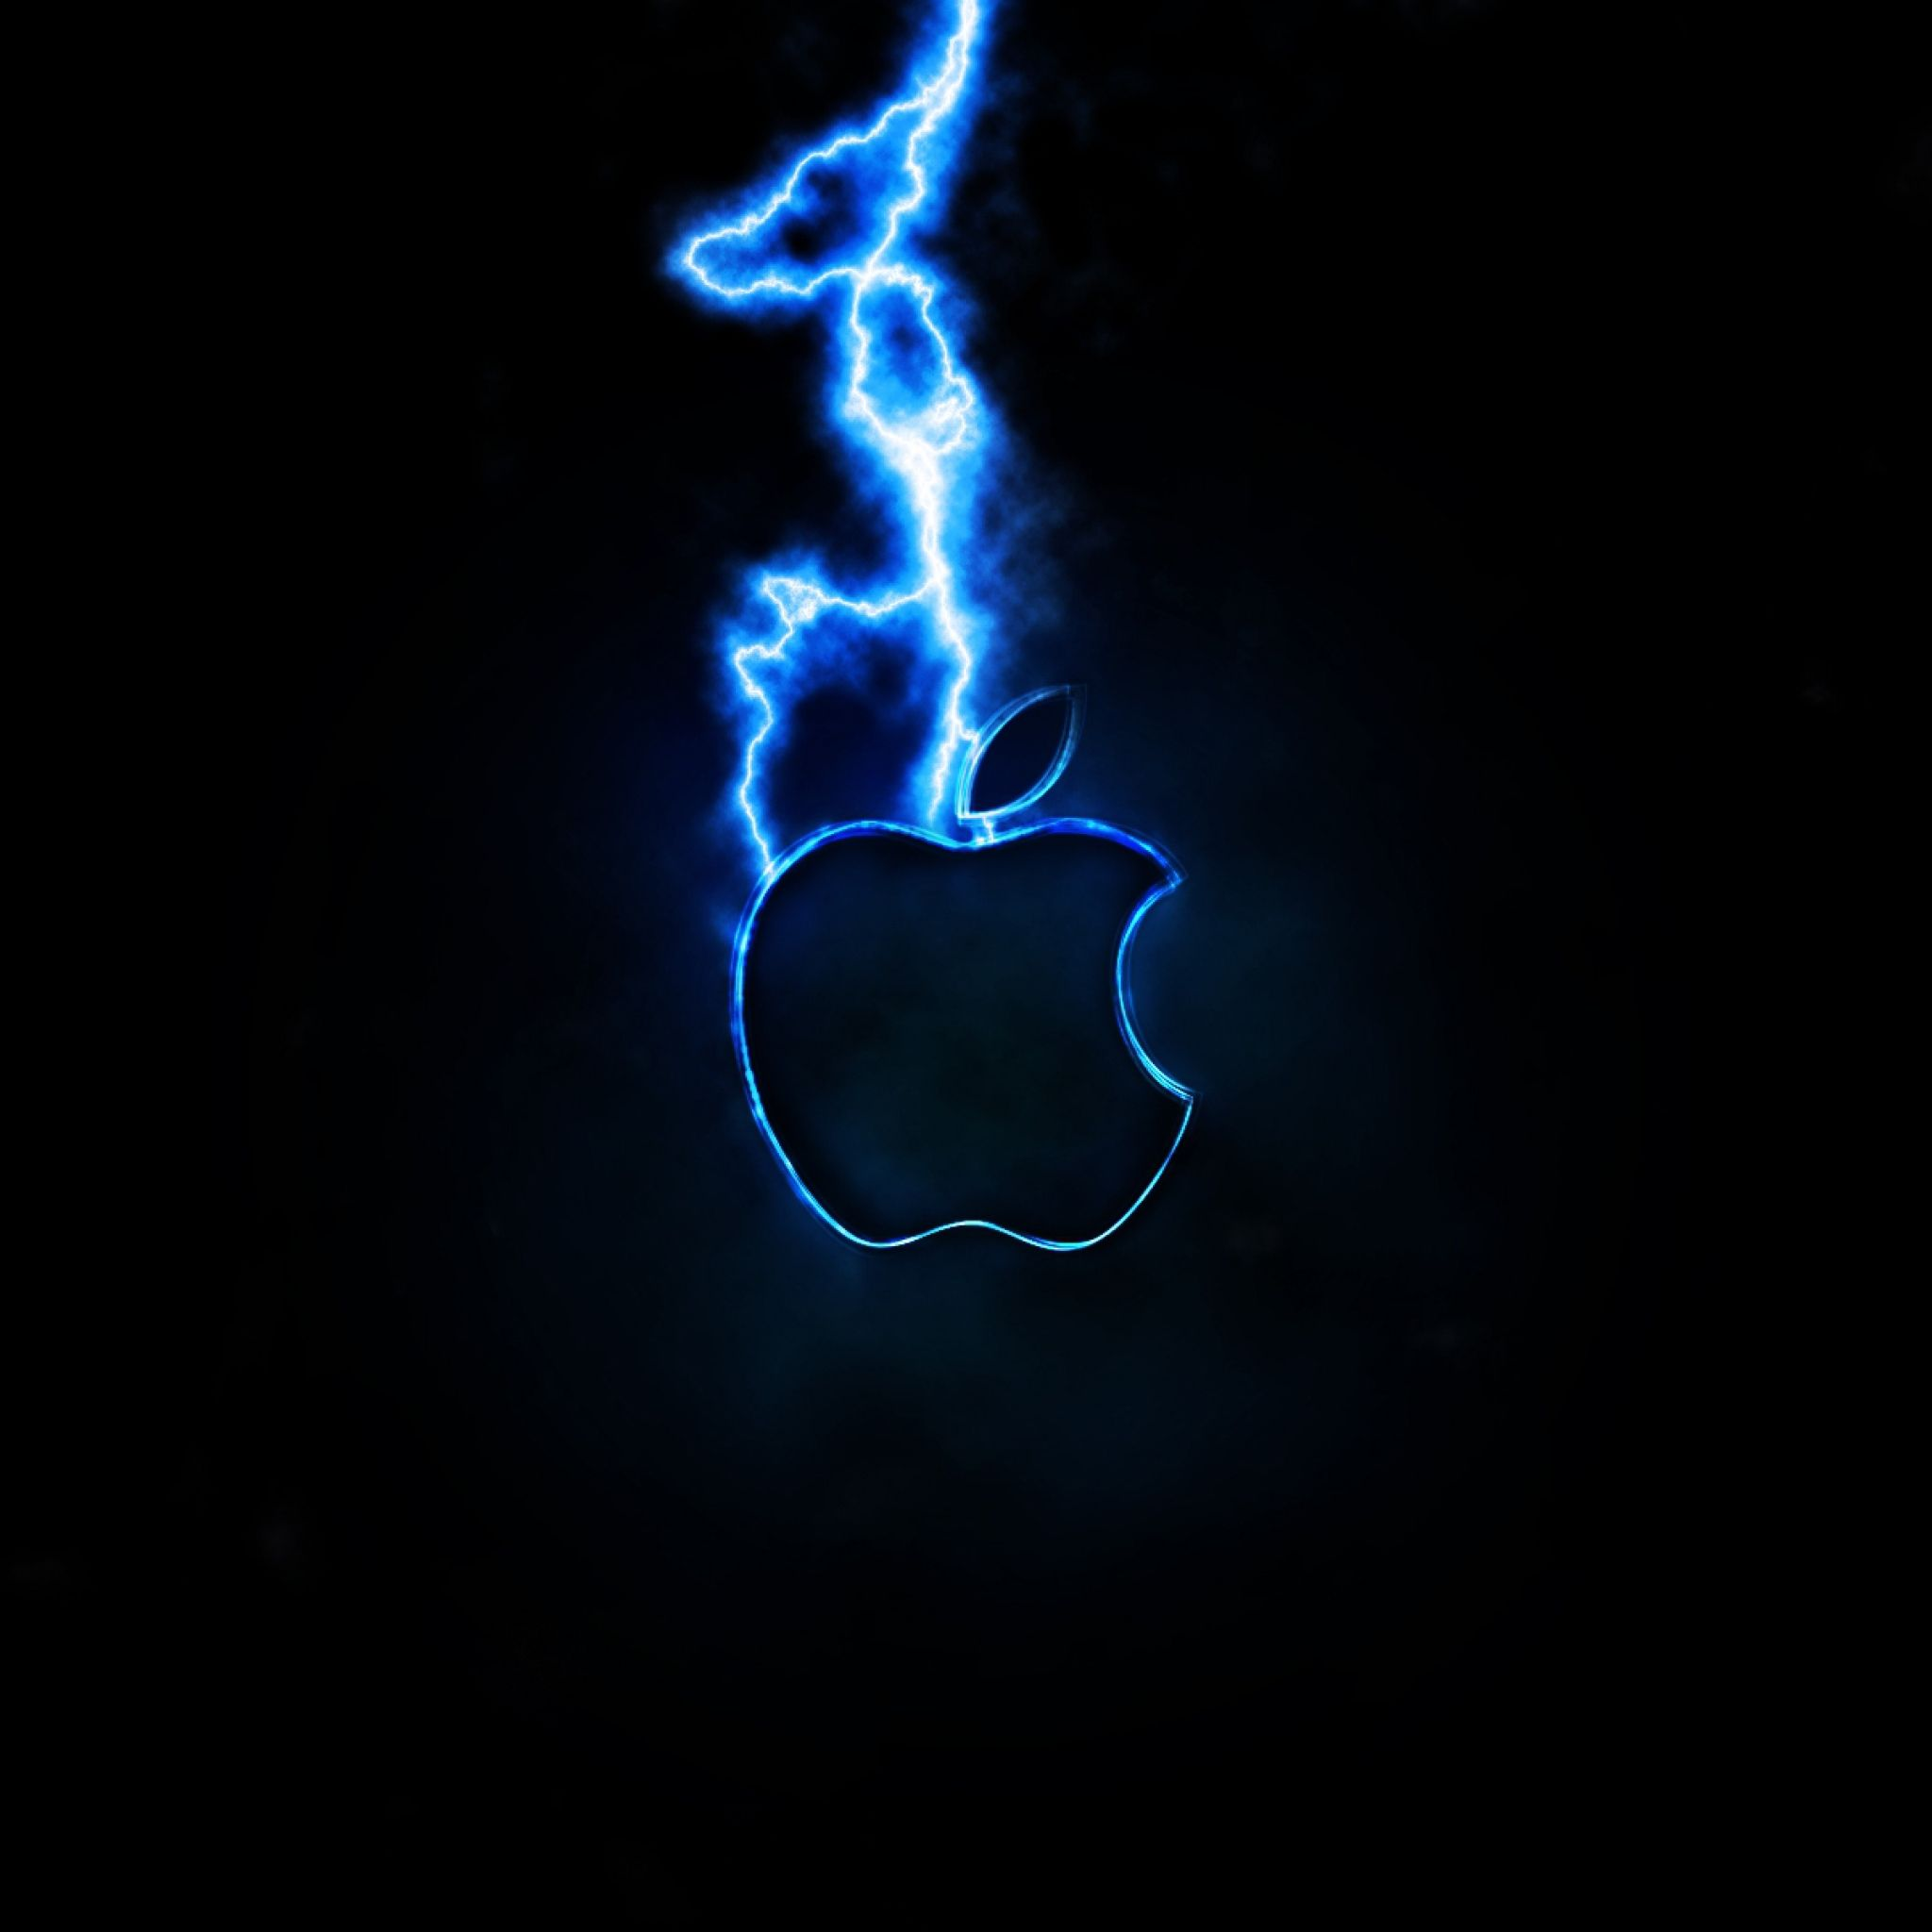 2048x2048 wallpaper app storm, apple, mac, blue, black, dark